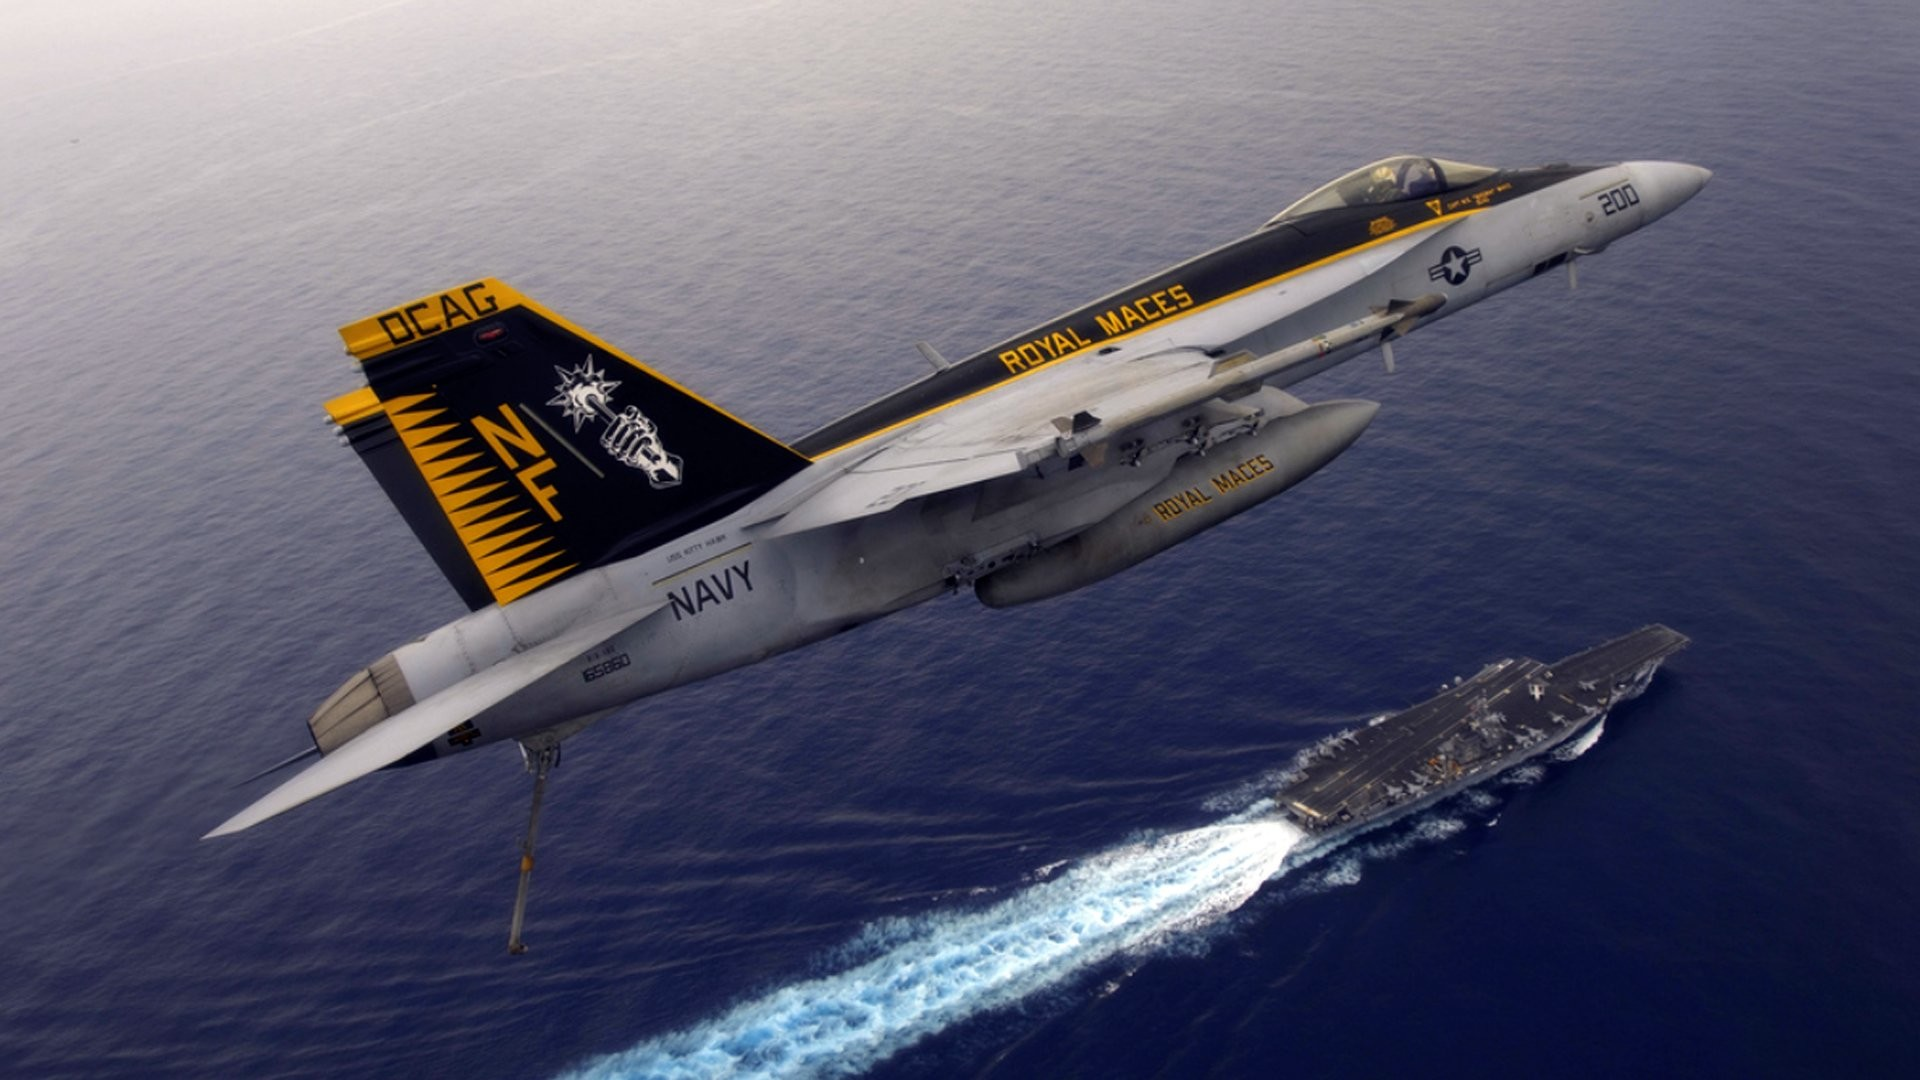 F 18 Super Hornet Wallpapers 77 Images HD Wallpapers Download Free Images Wallpaper [1000image.com]